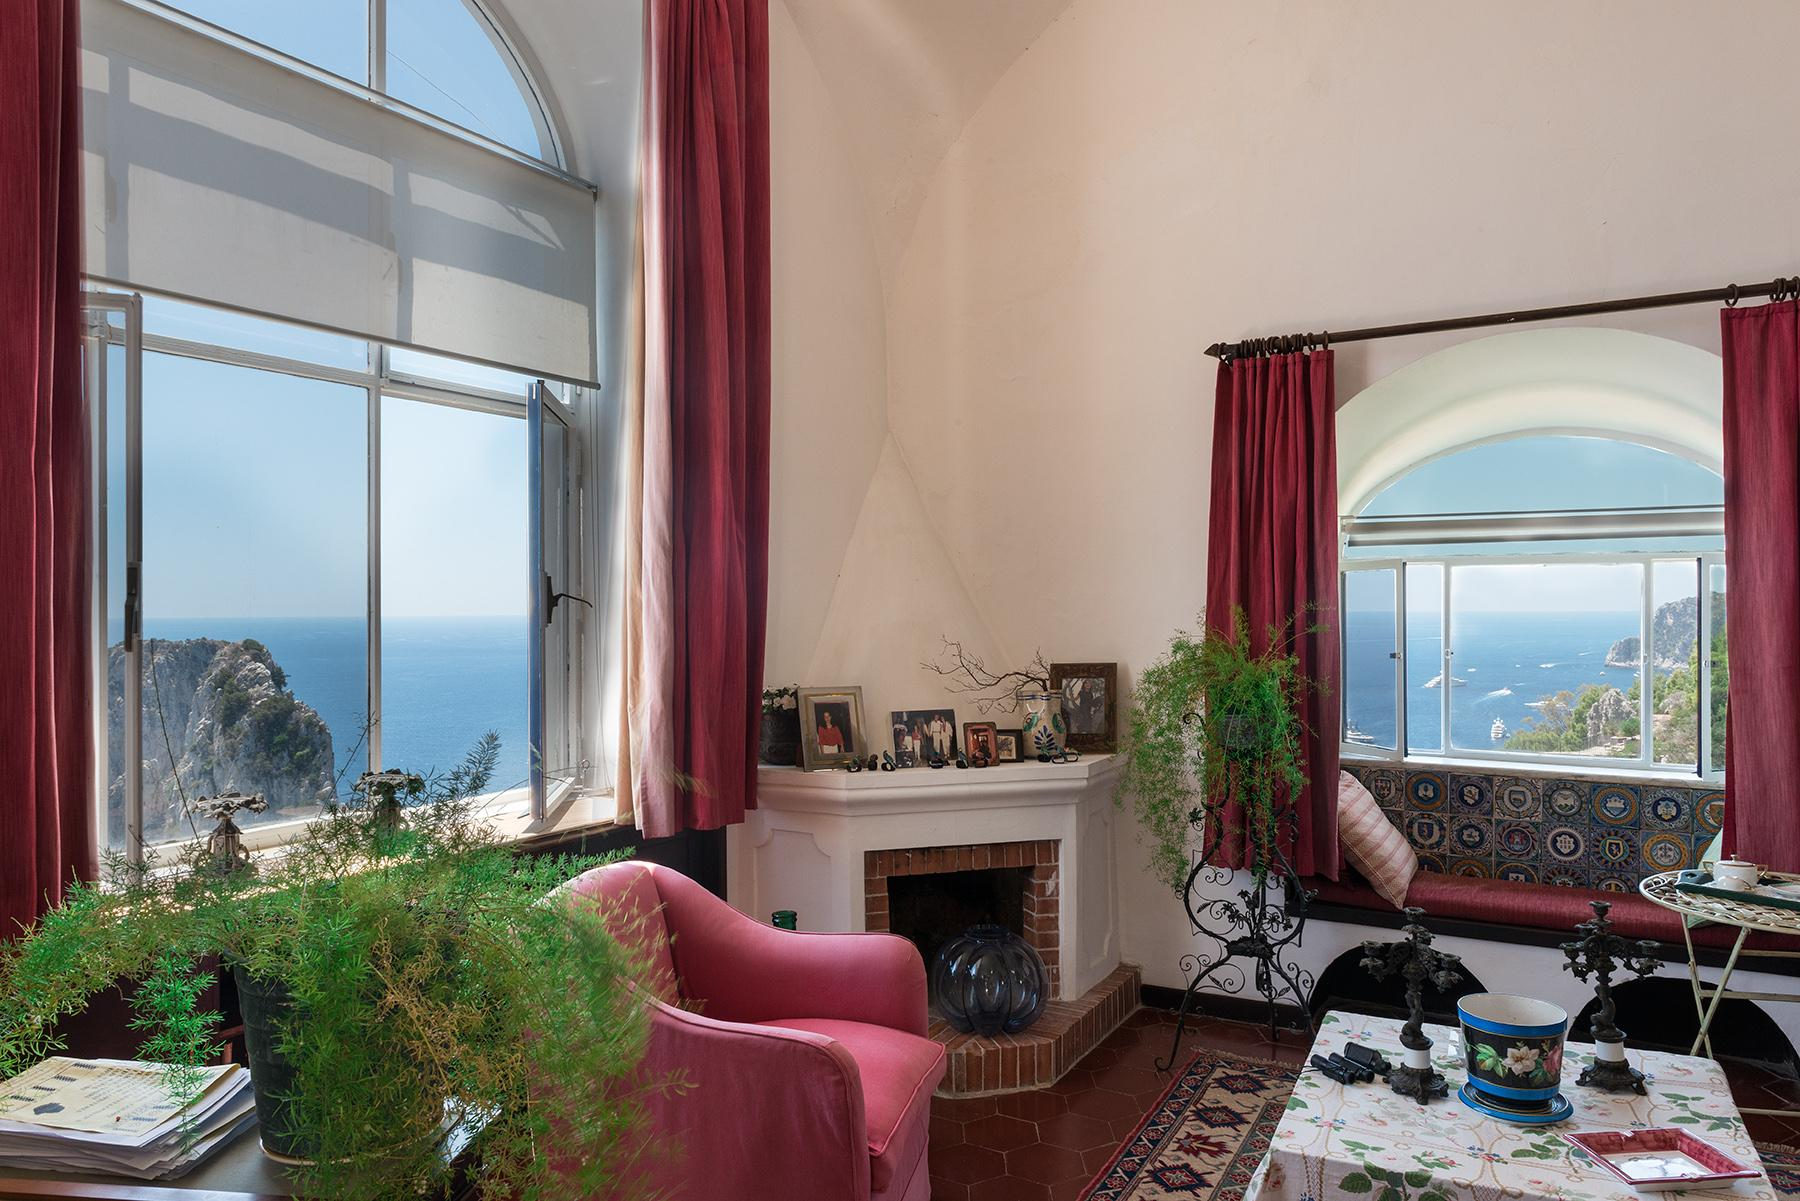 Remarkable villa with a breathtaking panorama on the Faraglioni rocks - 20